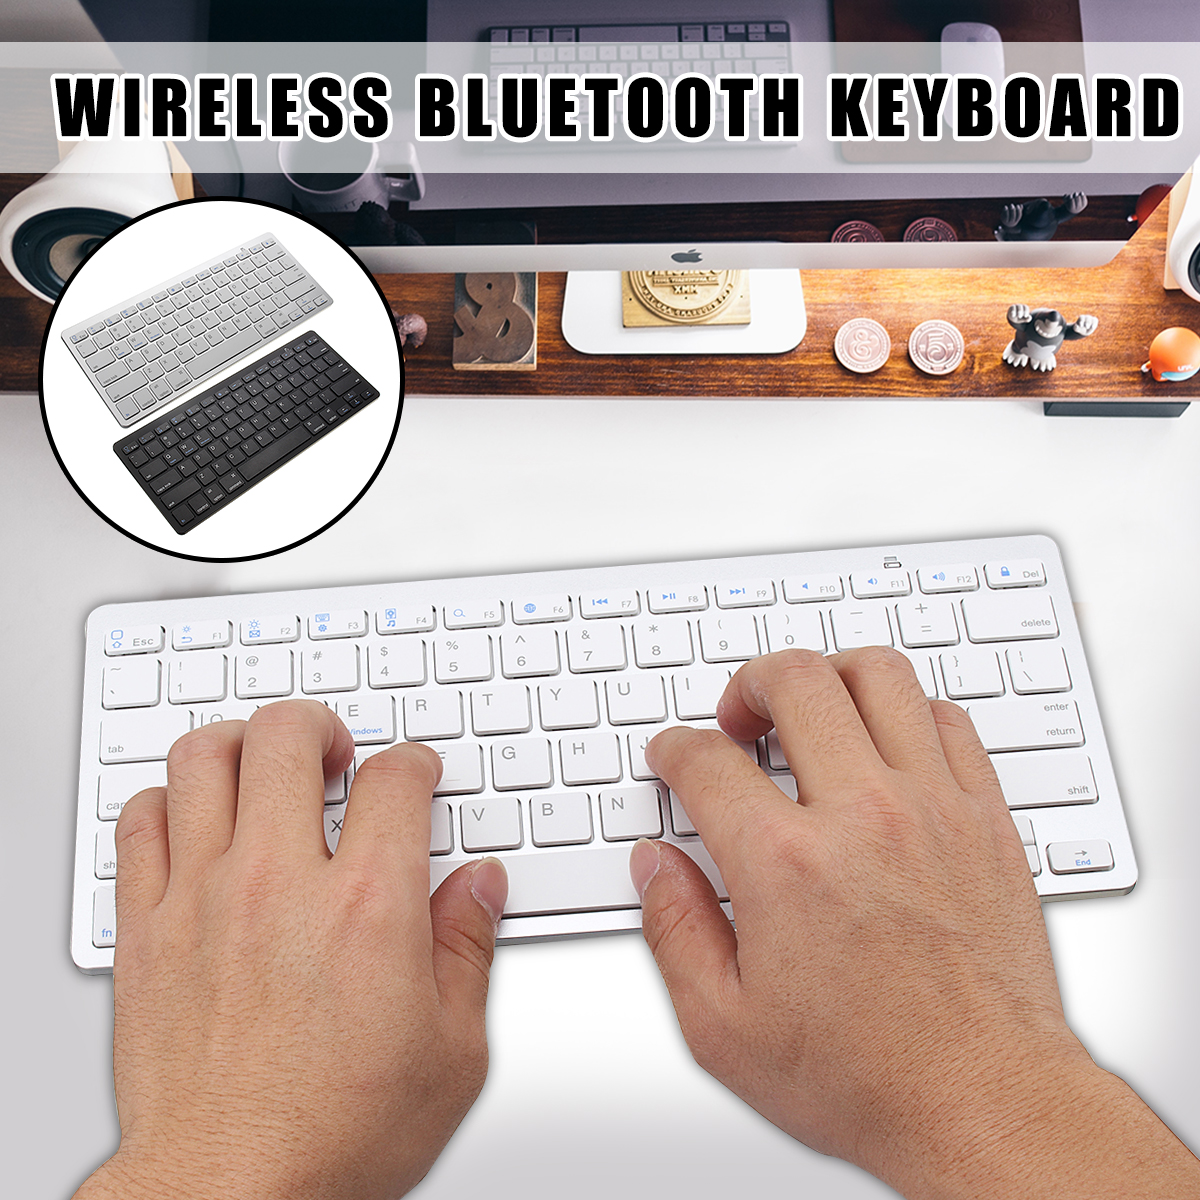 Wirelss bluetooth 3.0 Keyboard For iPhone iPad Macbook Samsung Tablet PC iOS Android Devices